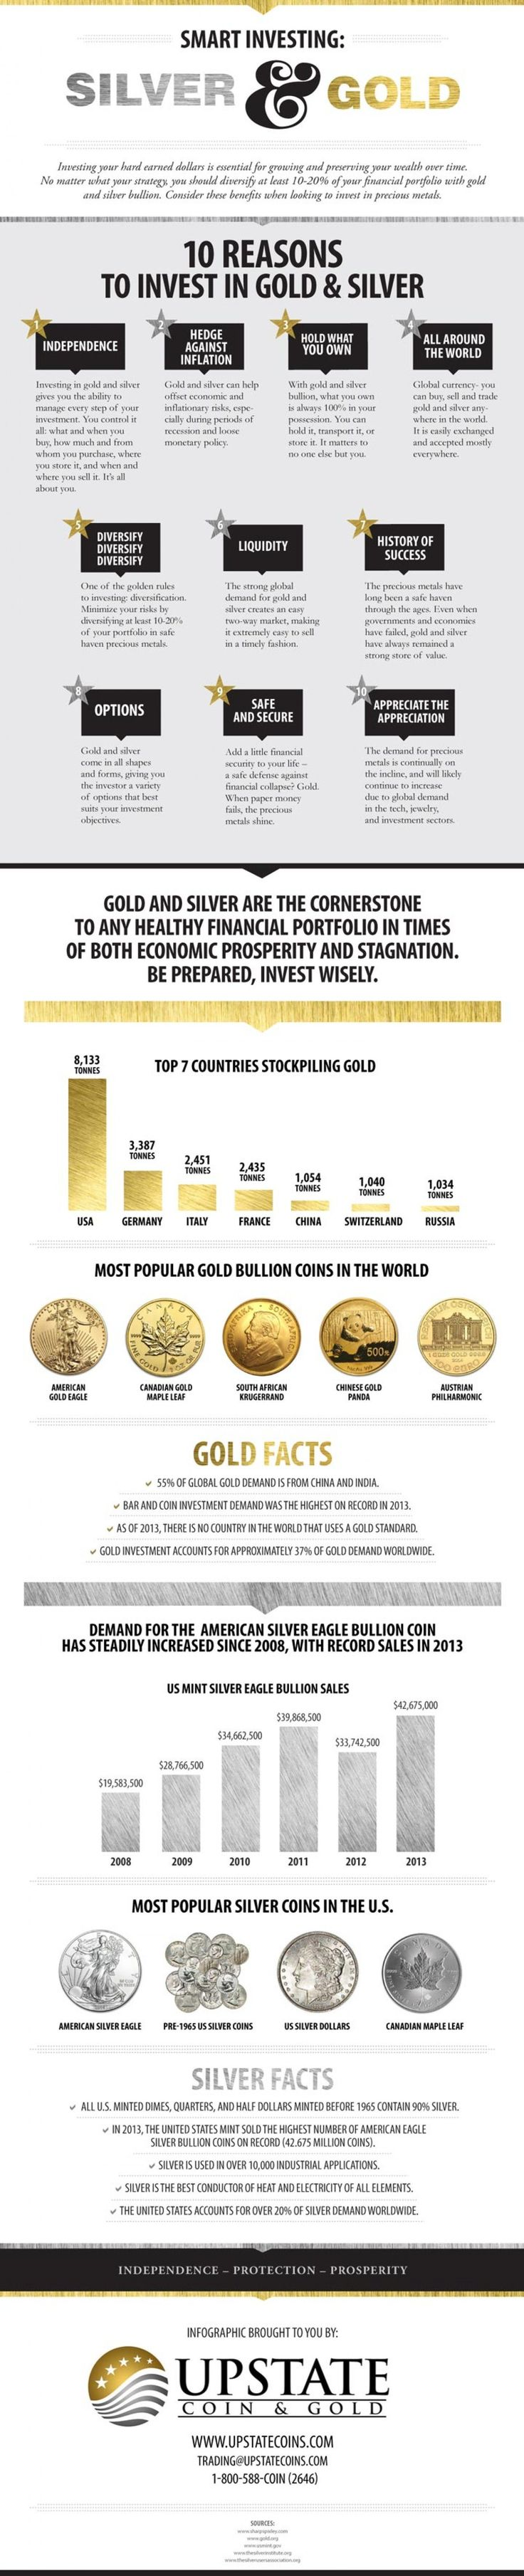 #Gold #Silver #Investing : Smart investing in silver and gold